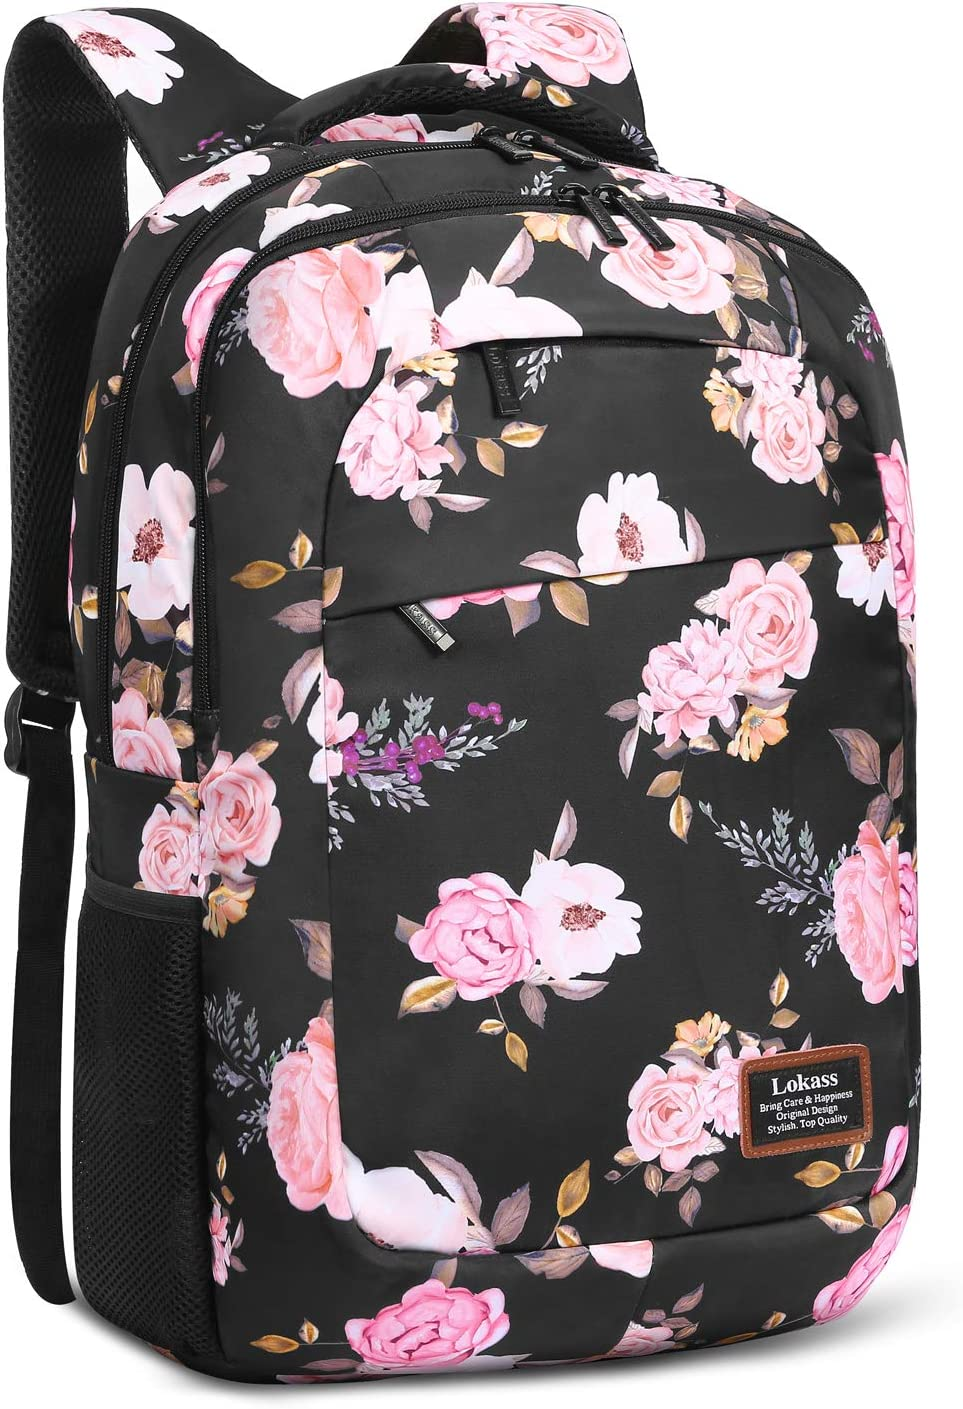 SOCKO Laptop Backpack for Women Lightweight College Backpack Floral Girls Backpack Hiking Backpack Water-resistant Rucksack for Women Peony Flower